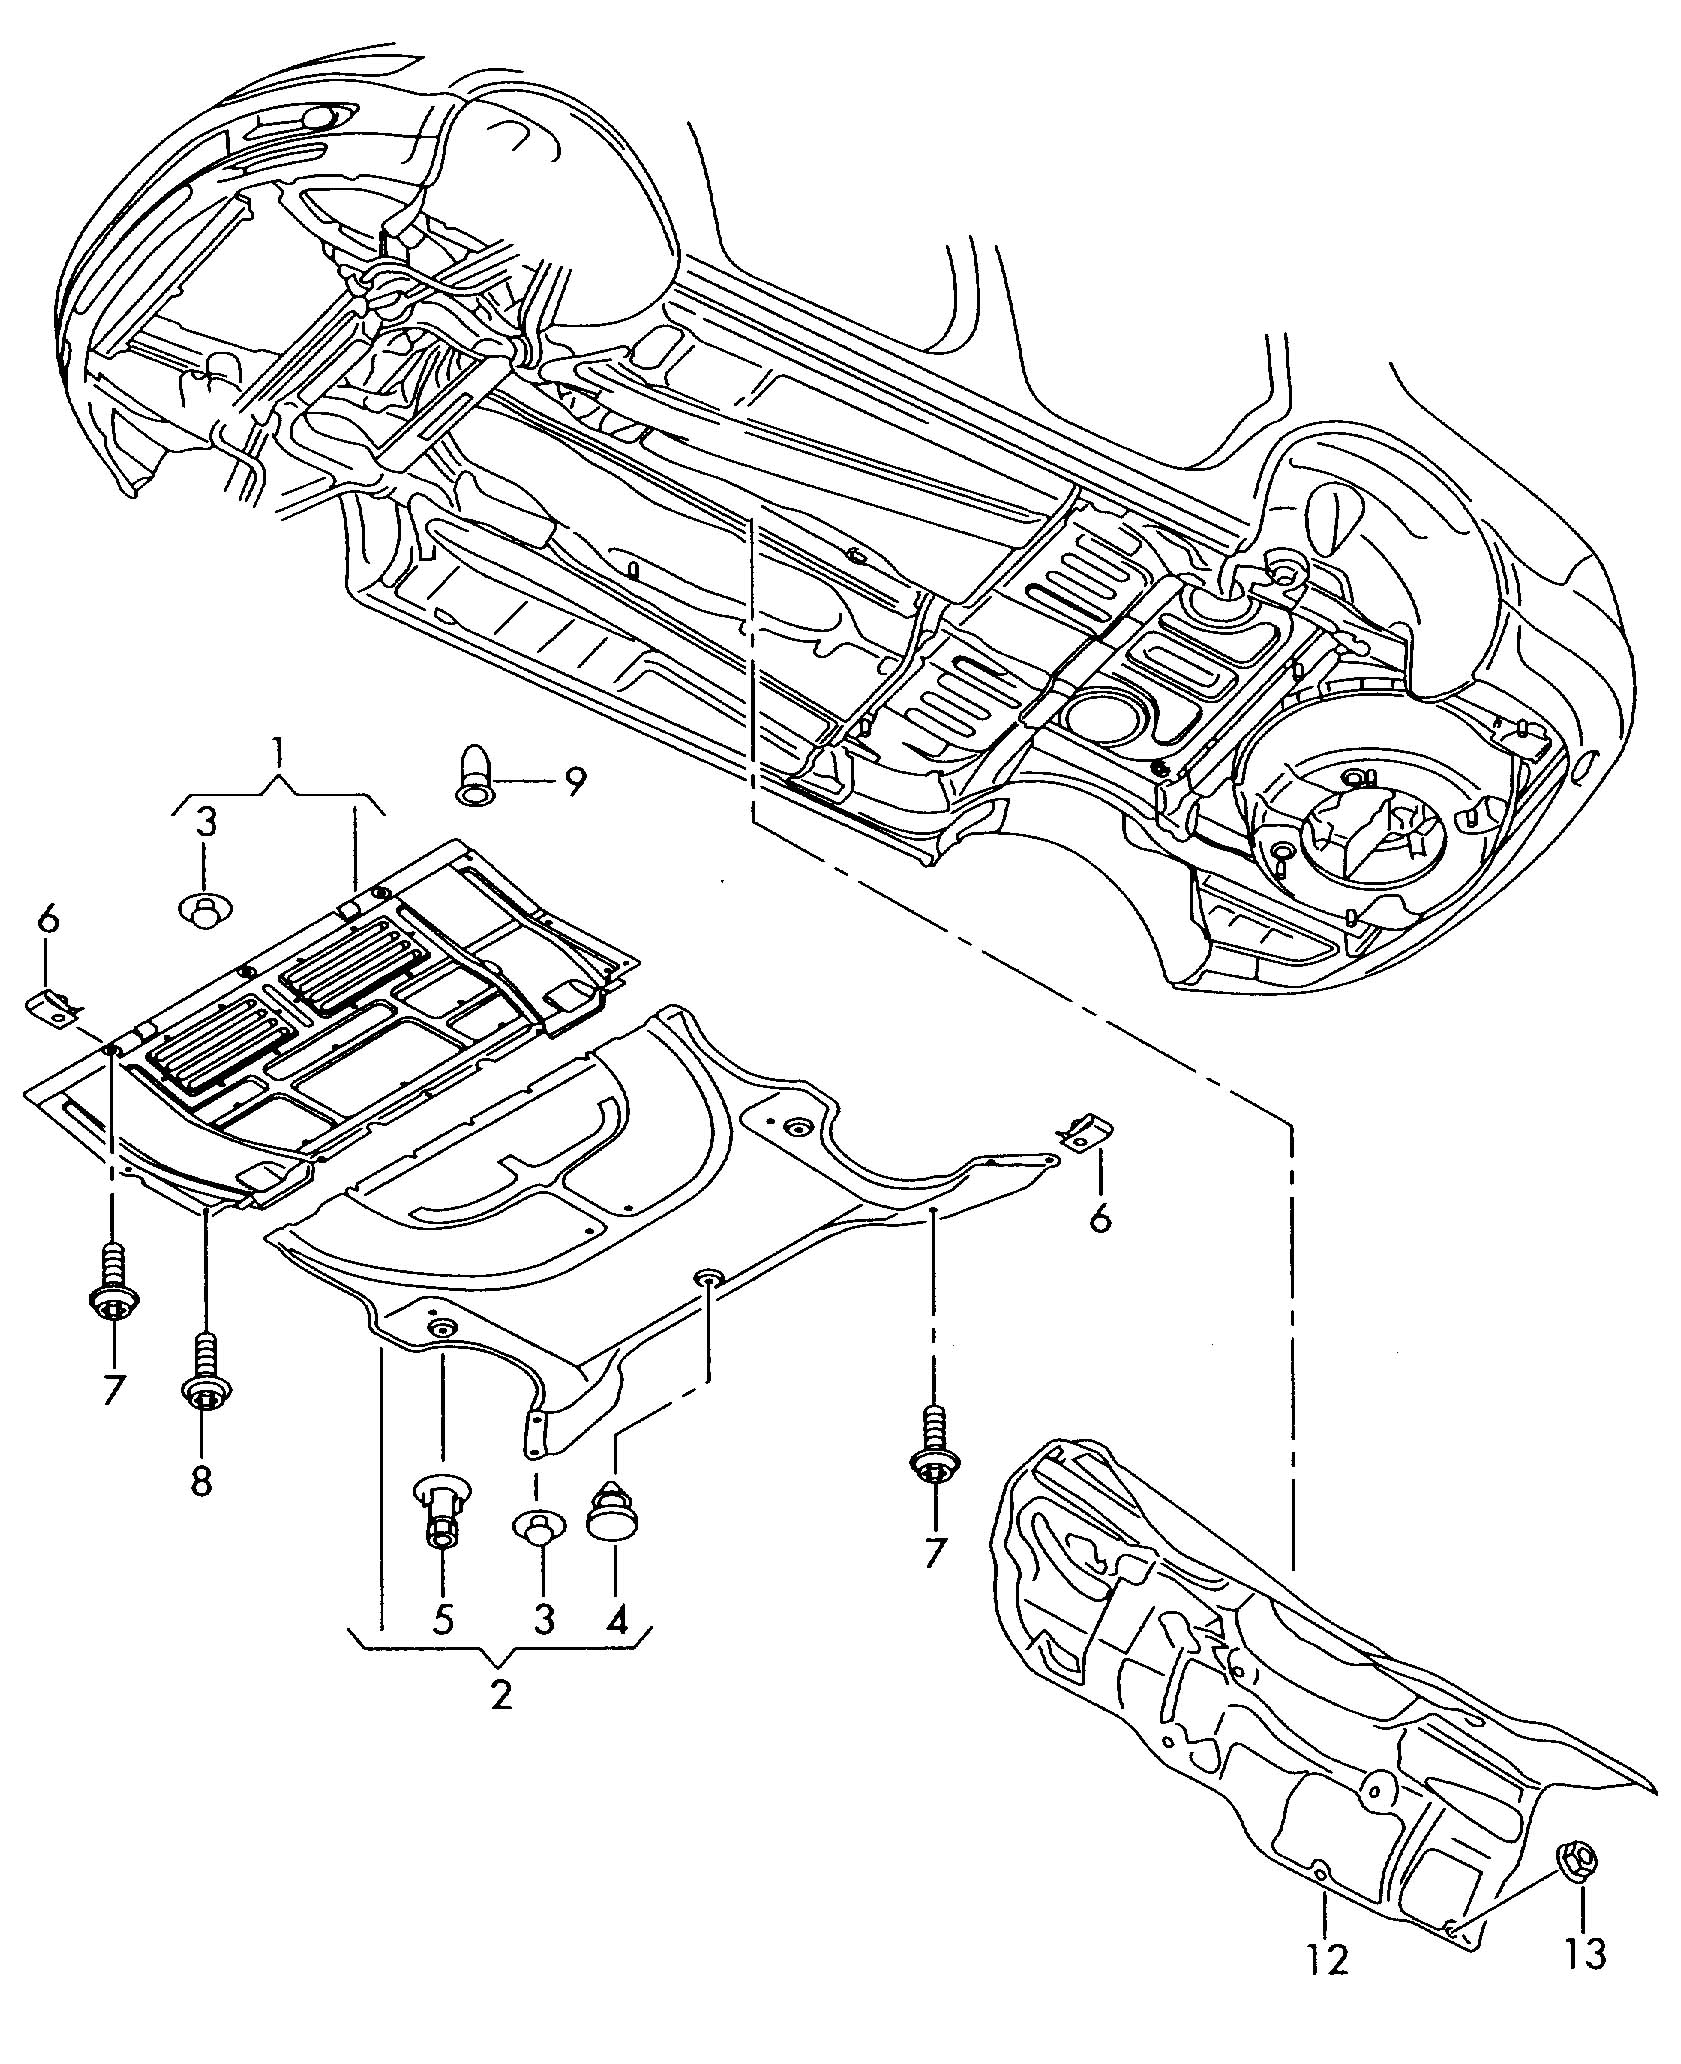 mk4 golf gti headlight wiring diagram